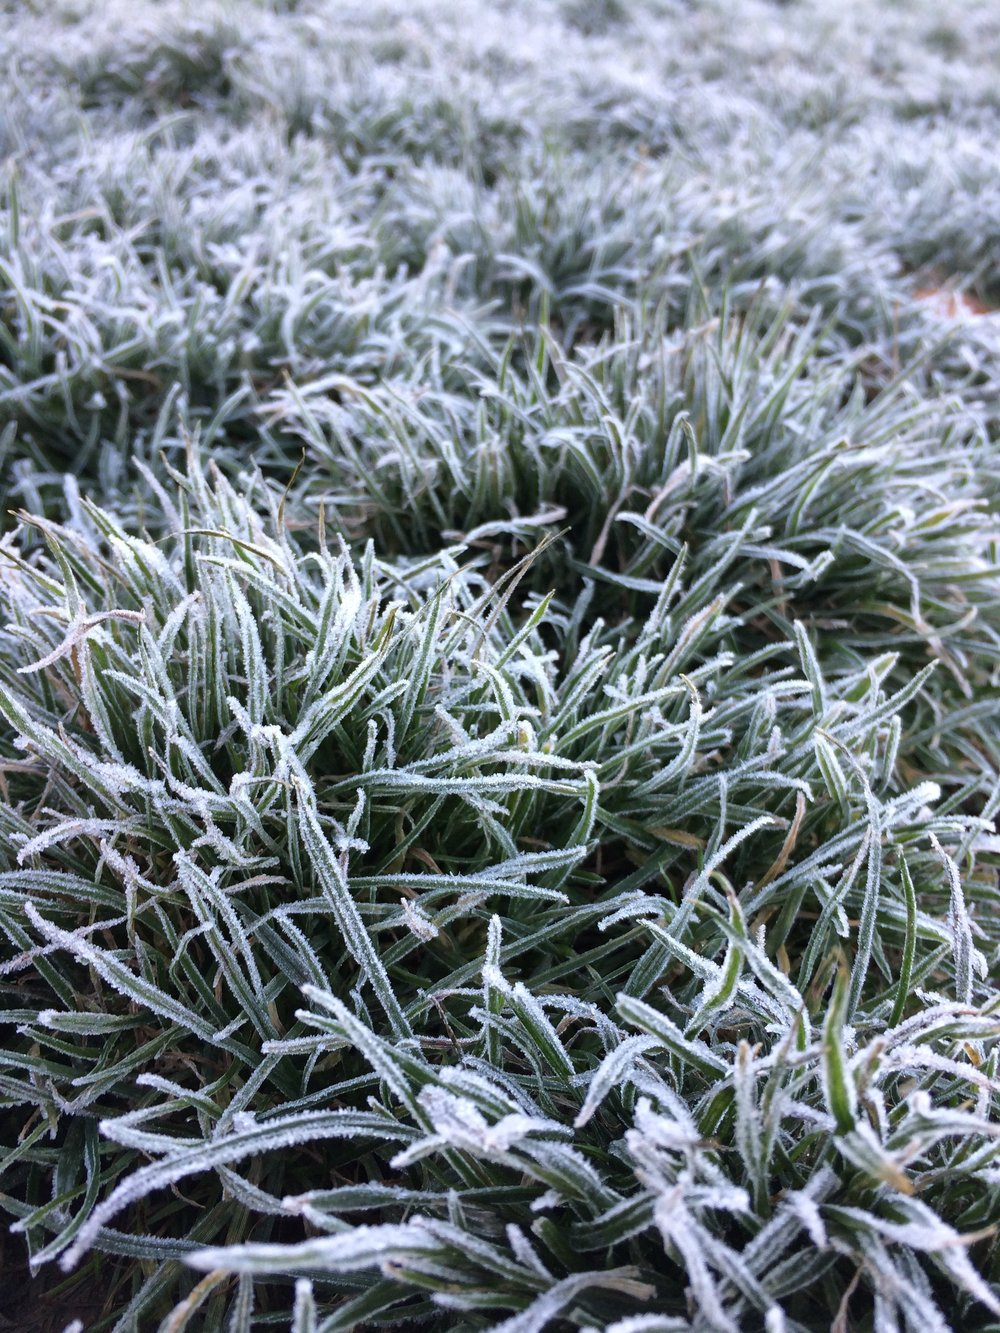 Frost-laden grass in the field at my boys' school.